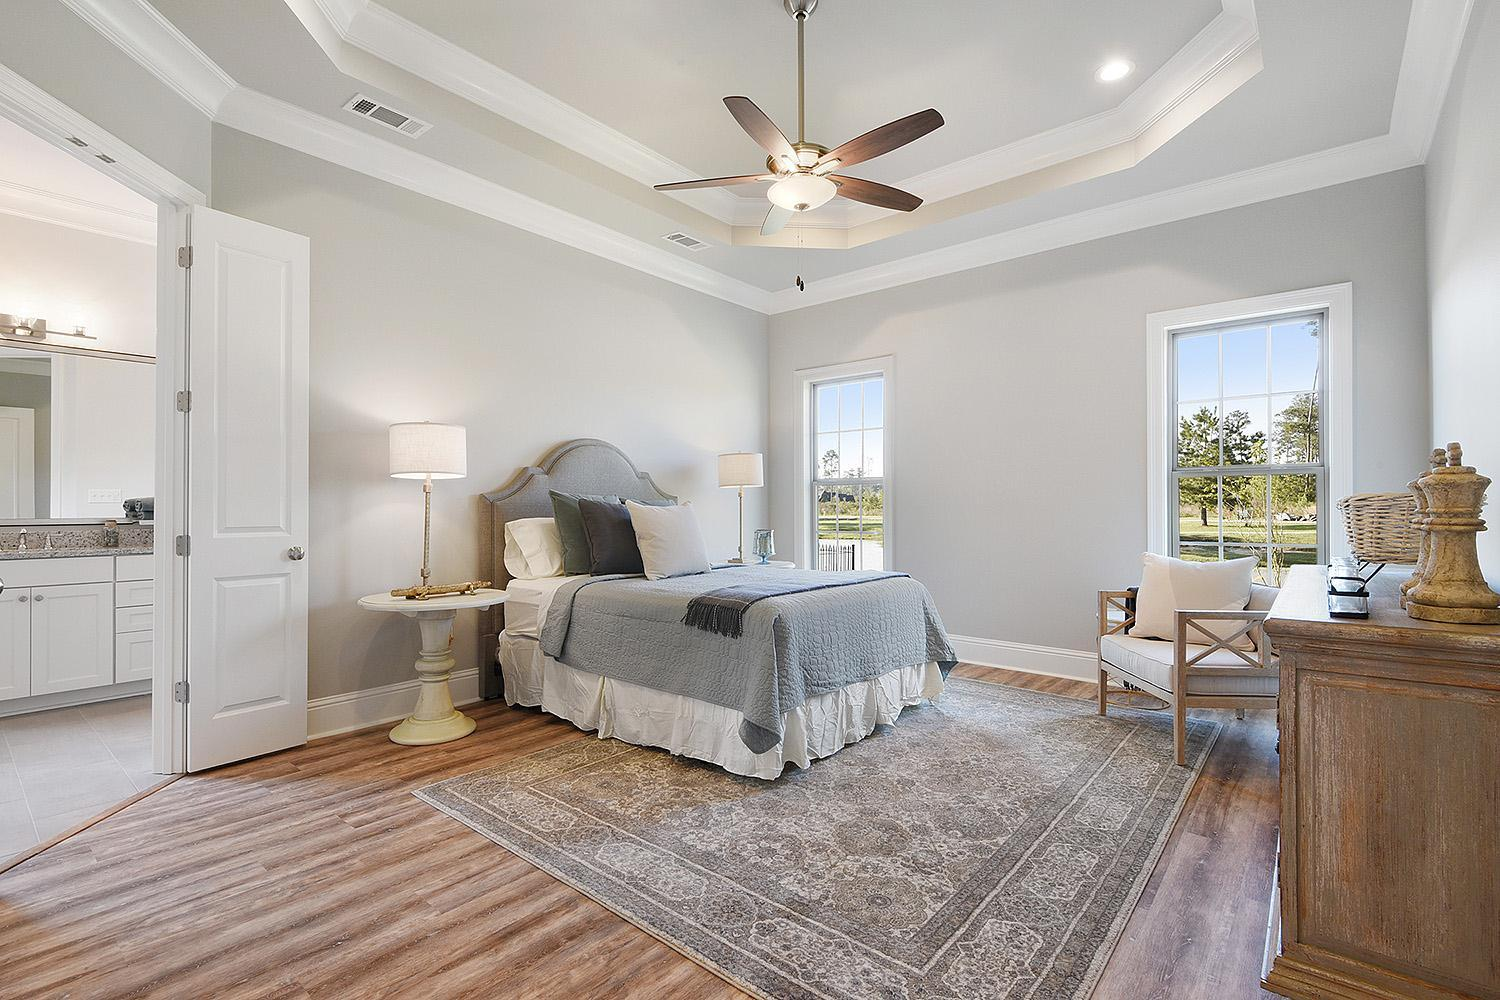 Bedroom featured in the Camille By Highland Homes in New Orleans, LA